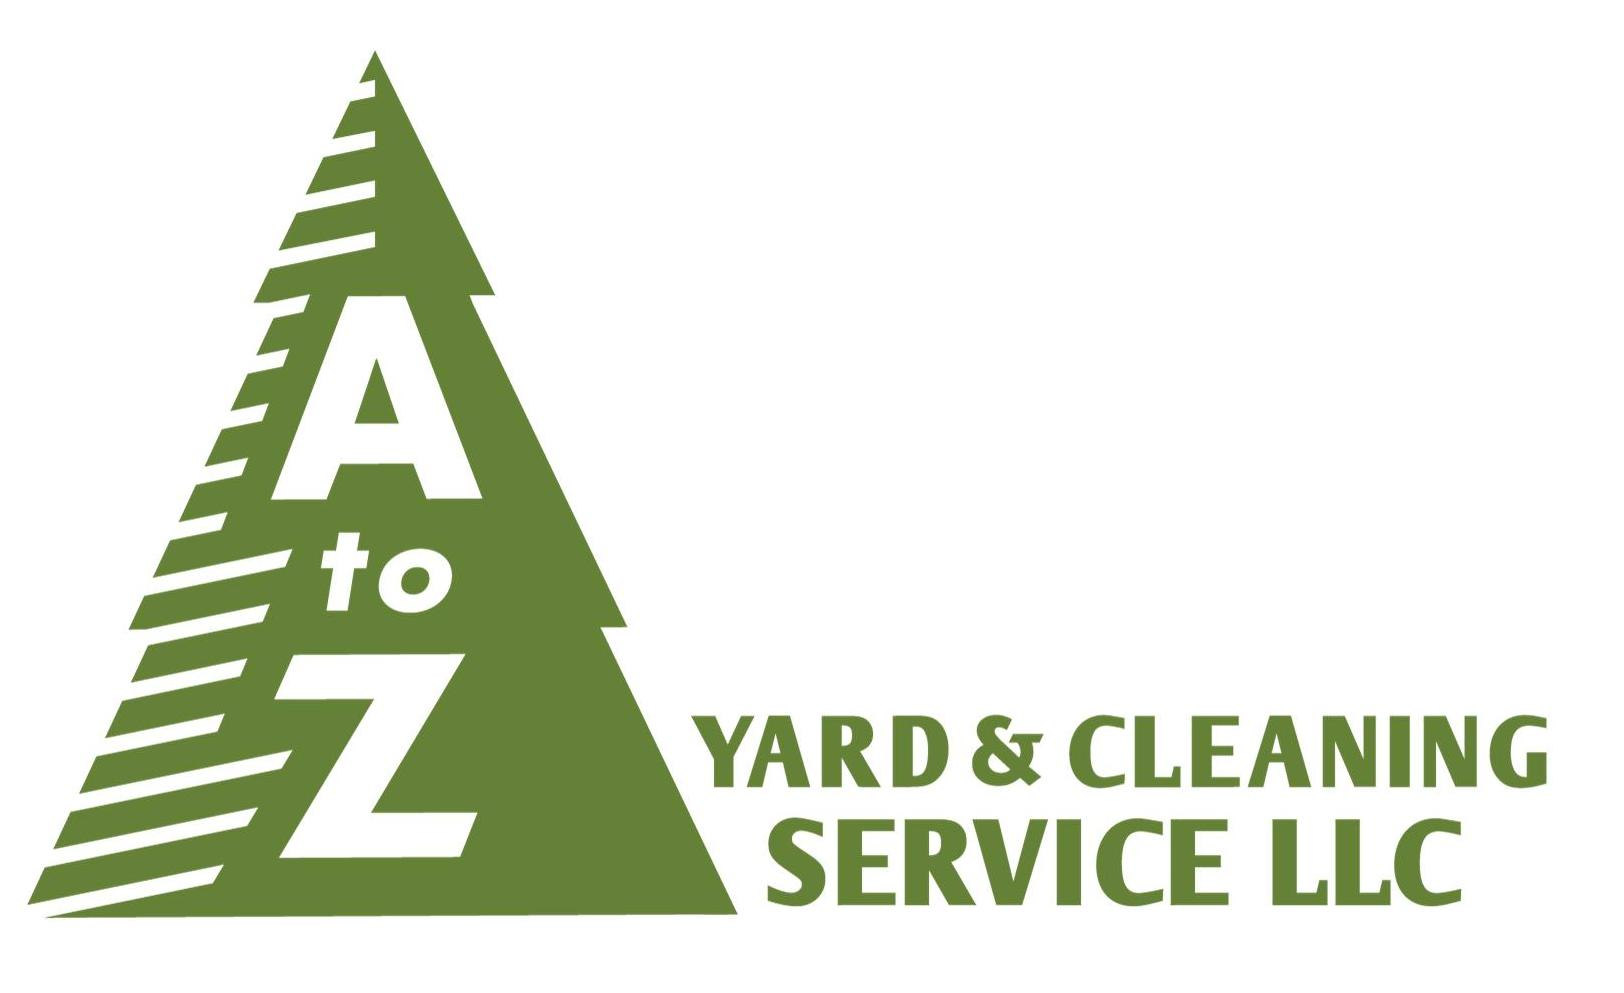 A to Z Yard & Cleaning Service LLC